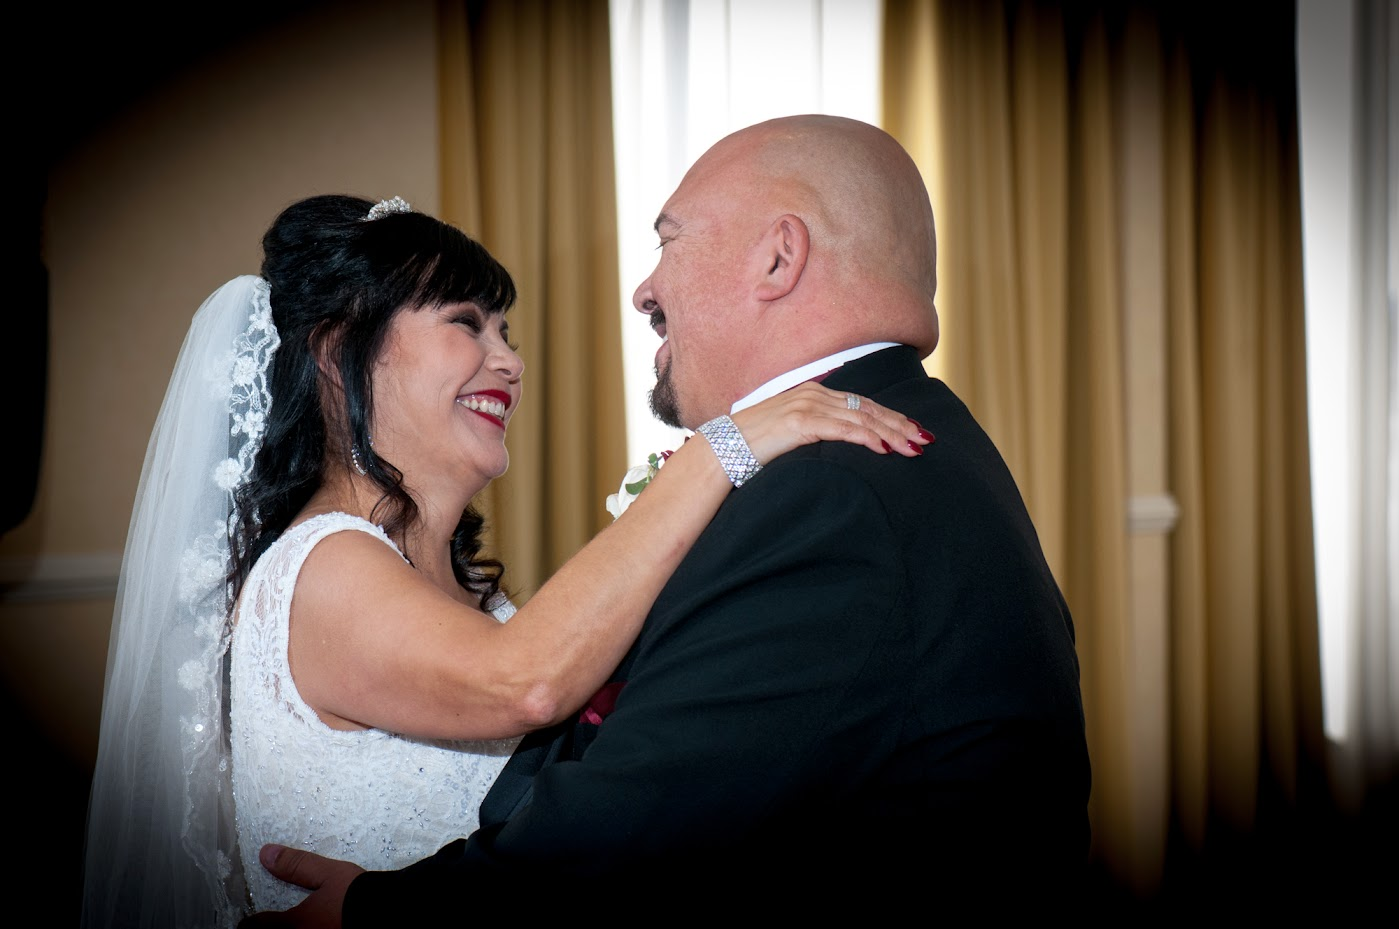 Happy wedding memories at the Knotts Berry Farm Hotel in Buena Park, CA